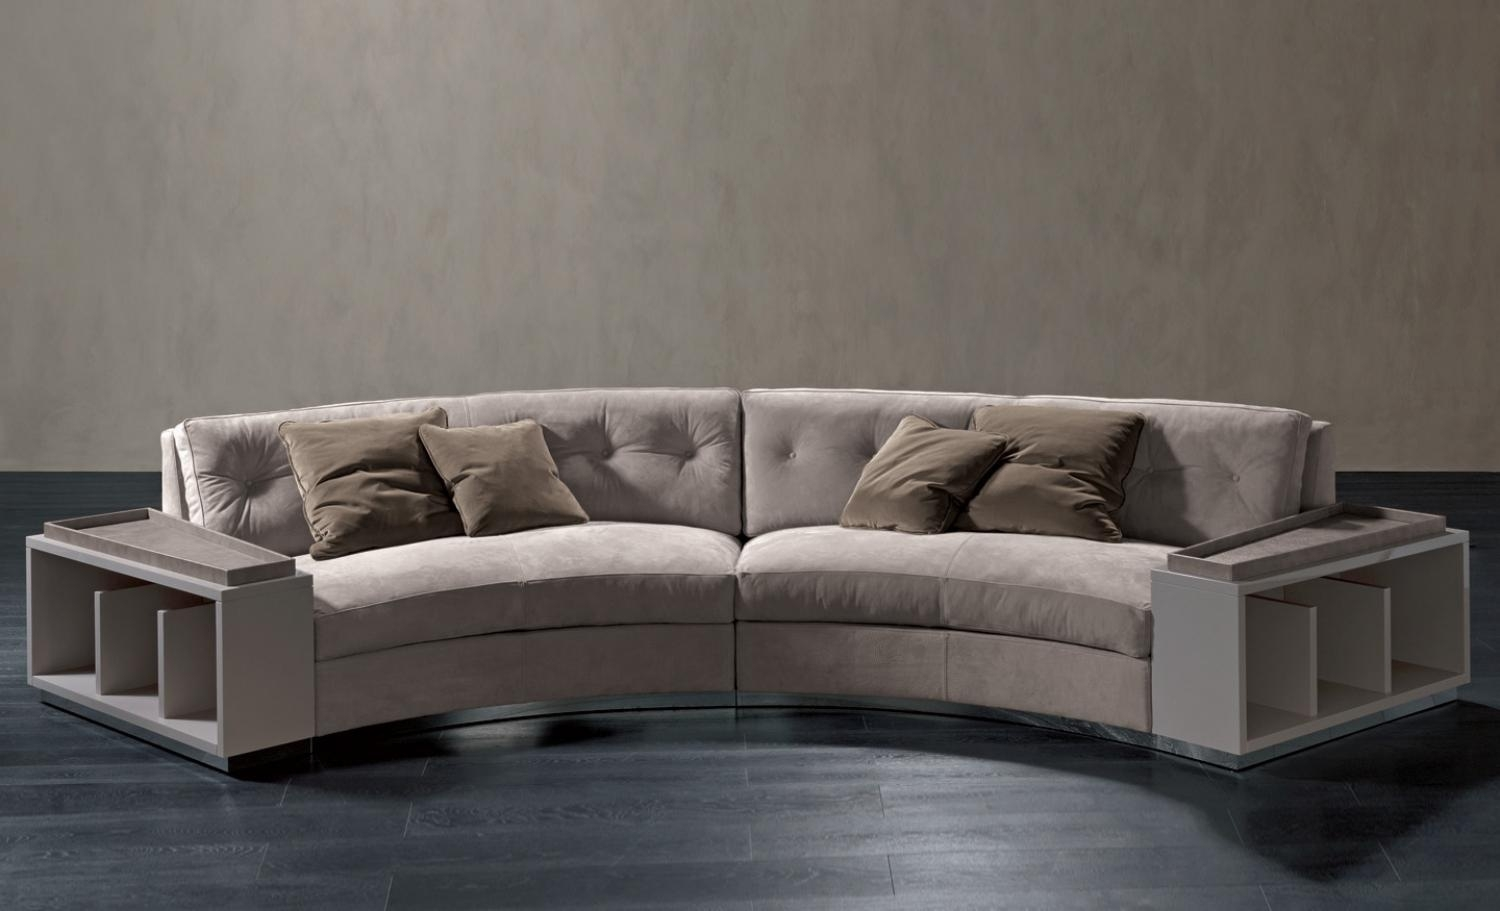 Semi Circular Sofa In Leather Circus, Rugiano – Luxury Furniture Mr Intended For Semicircular Sofas (View 8 of 10)